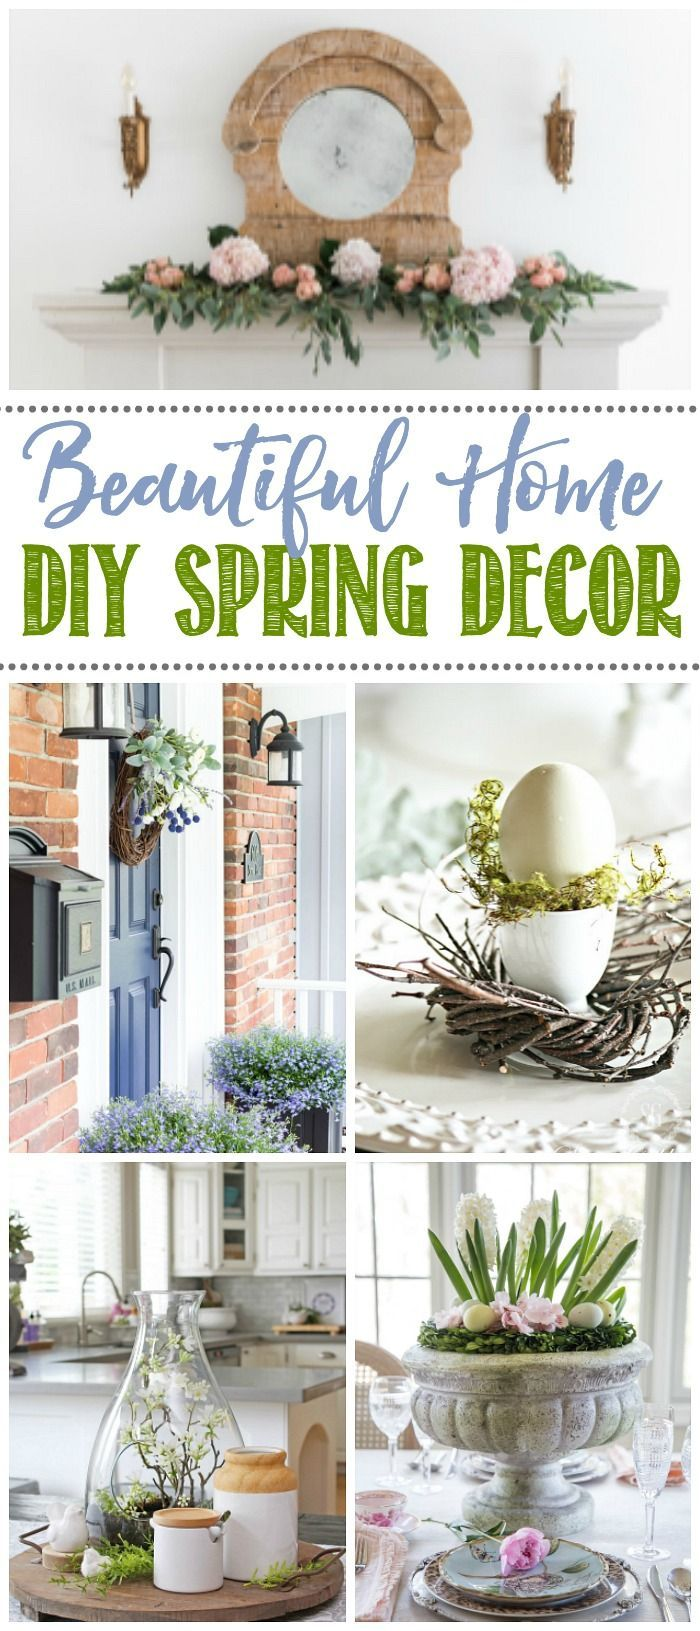 Love all of these simple DIY spring home decor ideas.   #springdecor #springdecorating #springDIY #DIY #homedecor #homedecorating